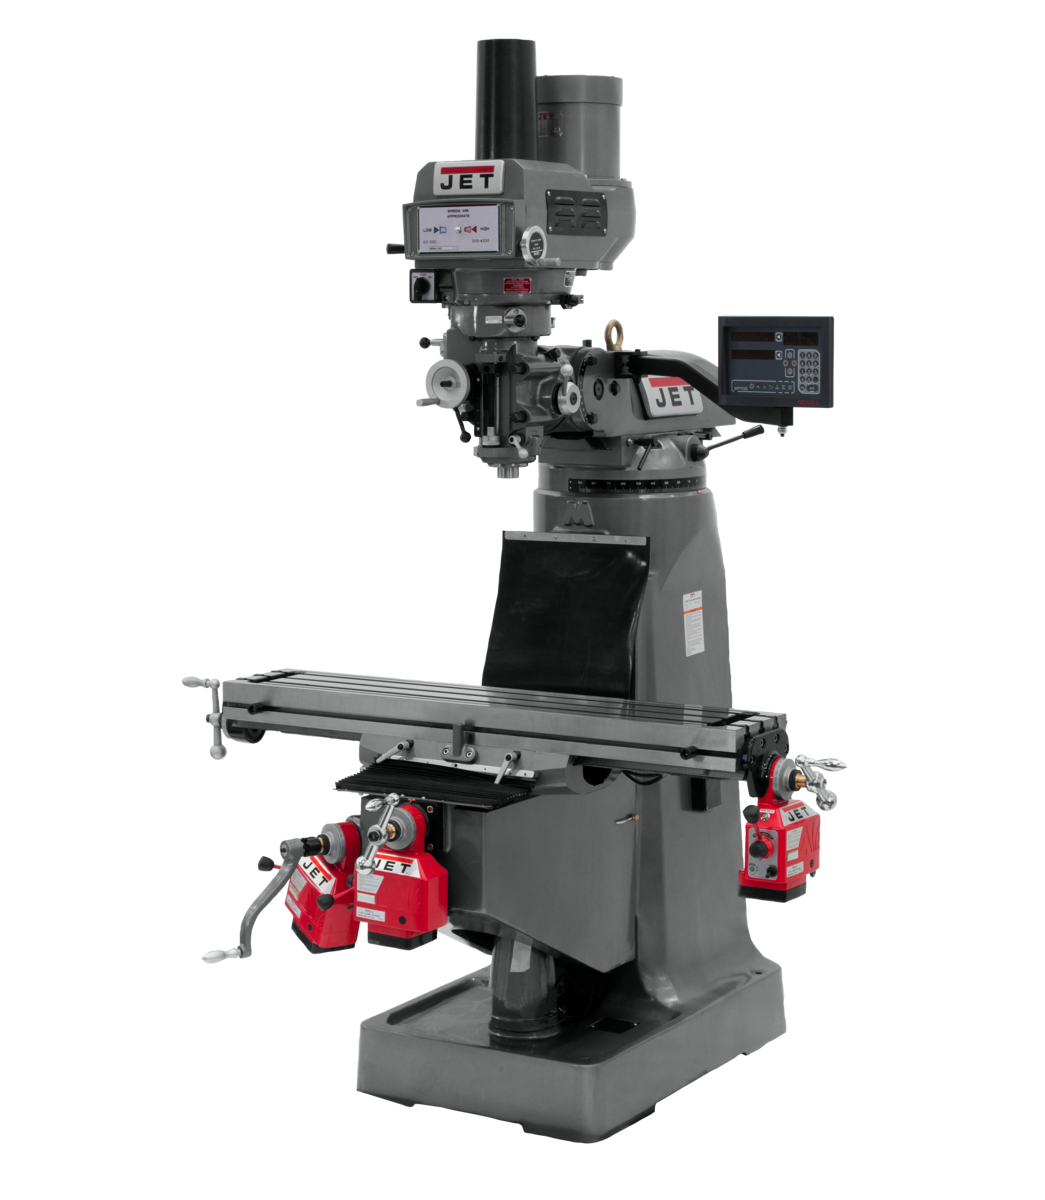 JTM-4VS Mill With 3-Axis Newall DP700 DRO (Knee) With X, Y and Z-Axis Powerfeeds and Power Draw Bar